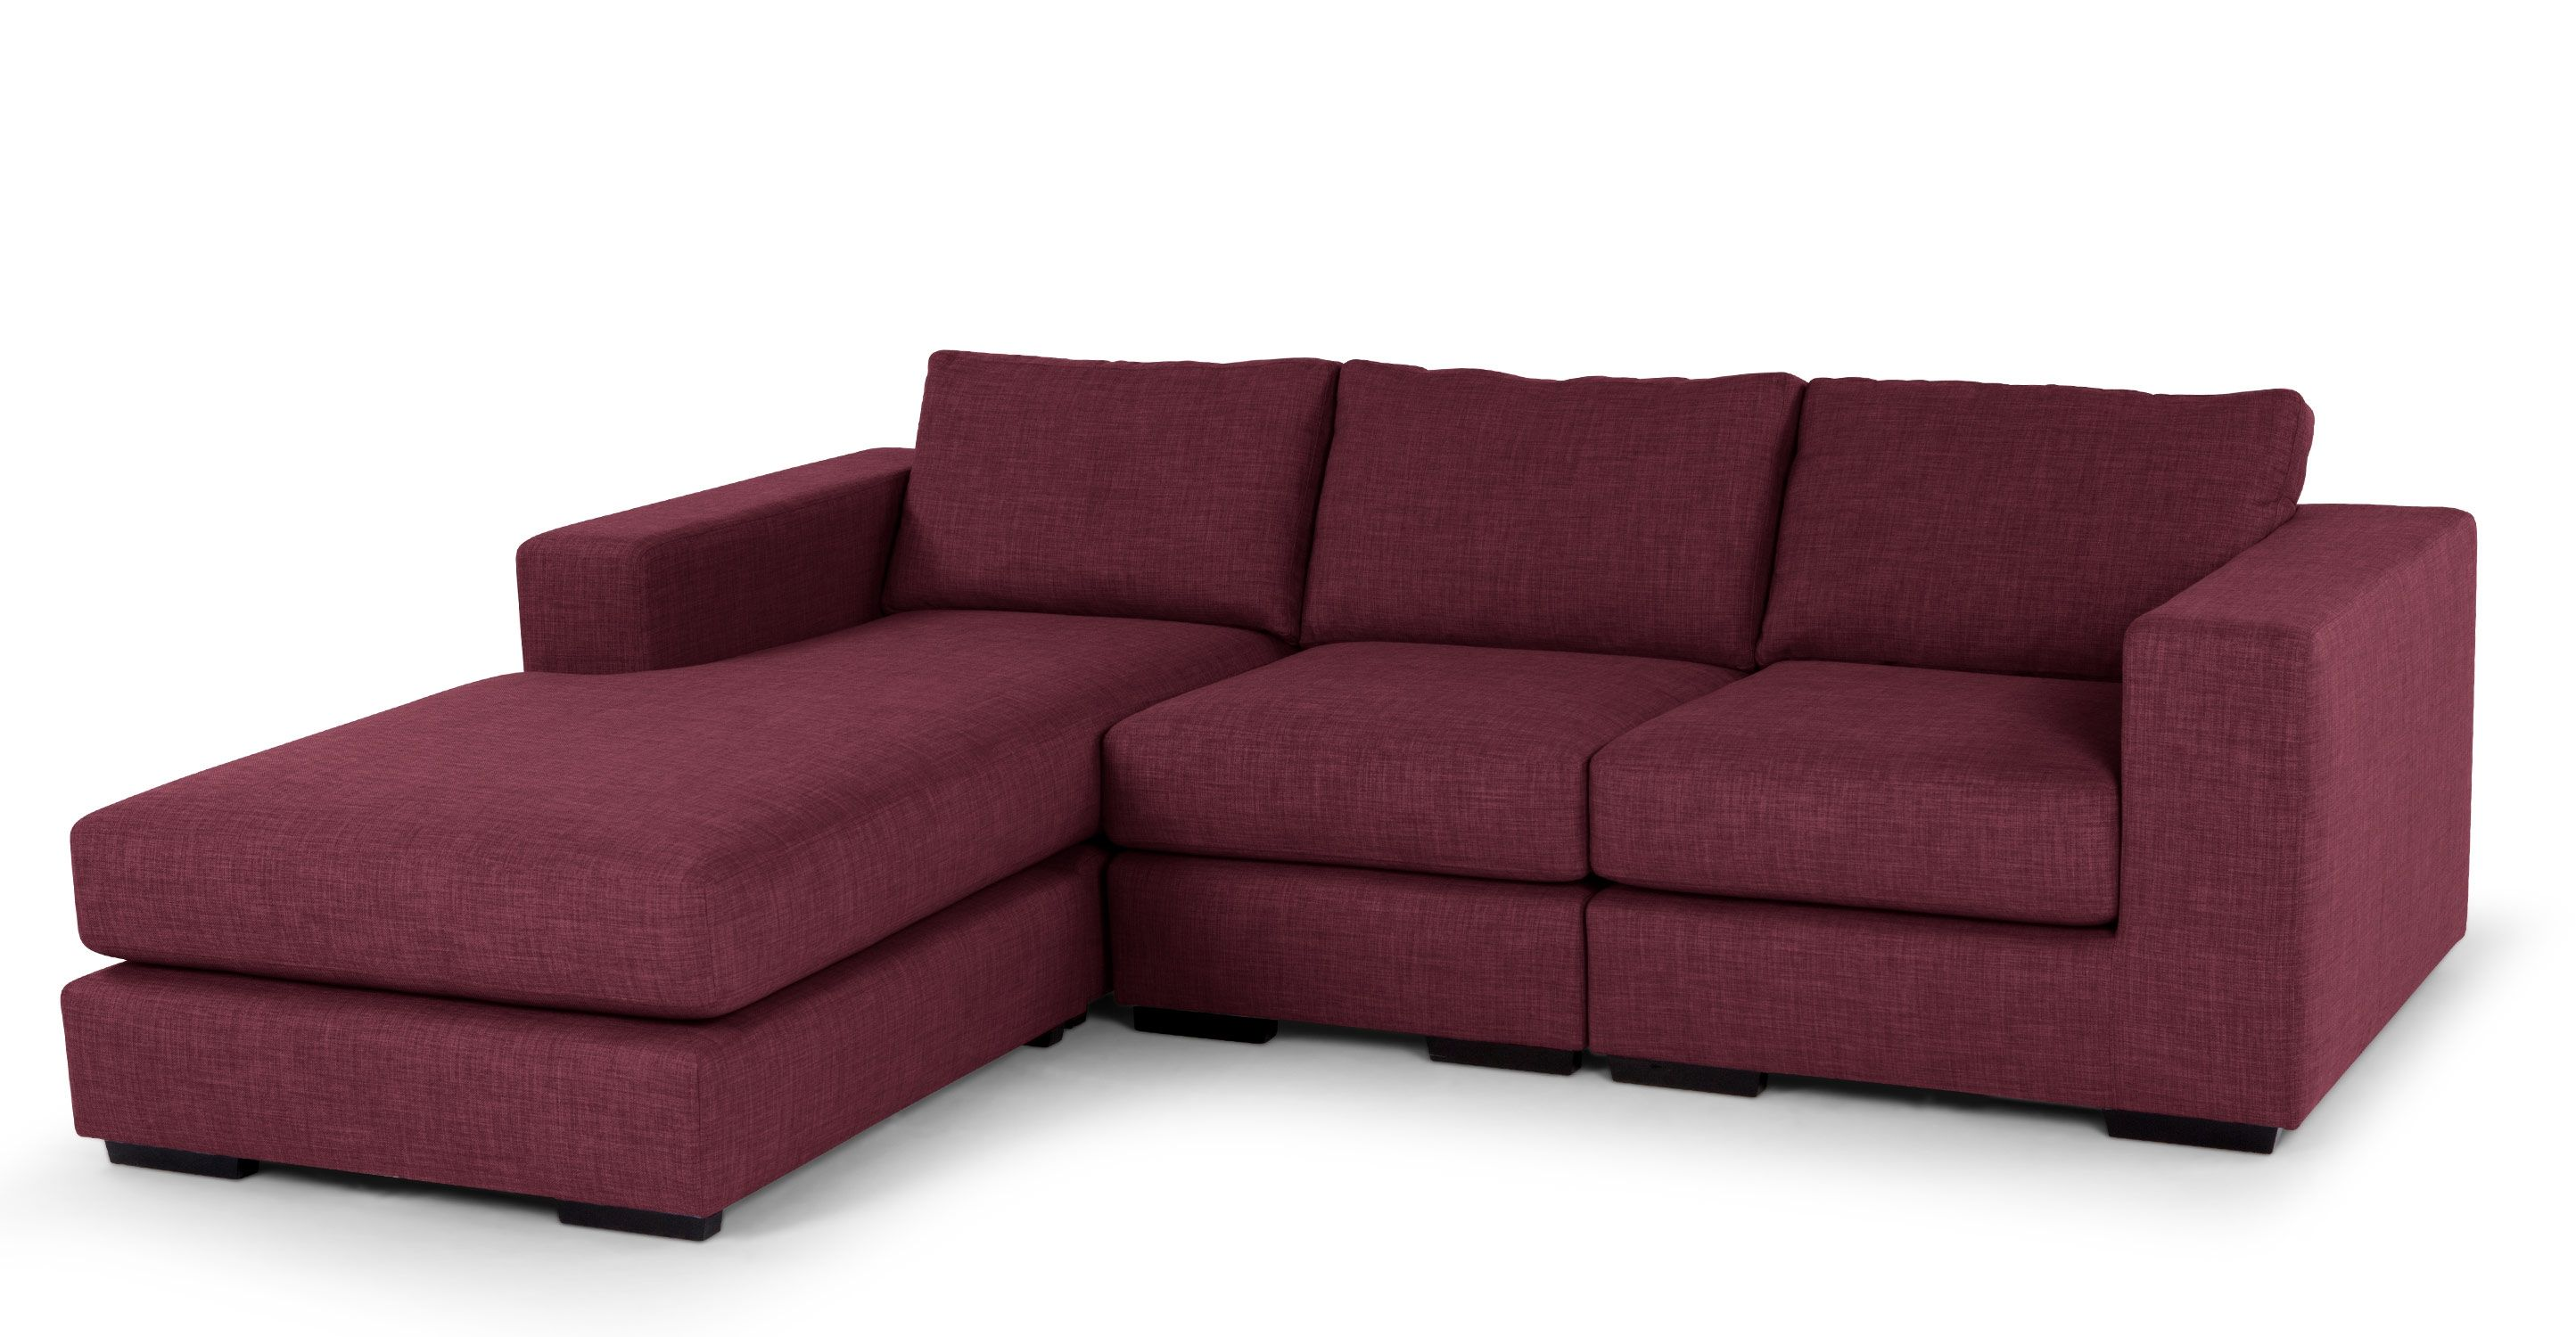 Mortimer 4 Seater Modular Corner Sofa Shadow Wine Red